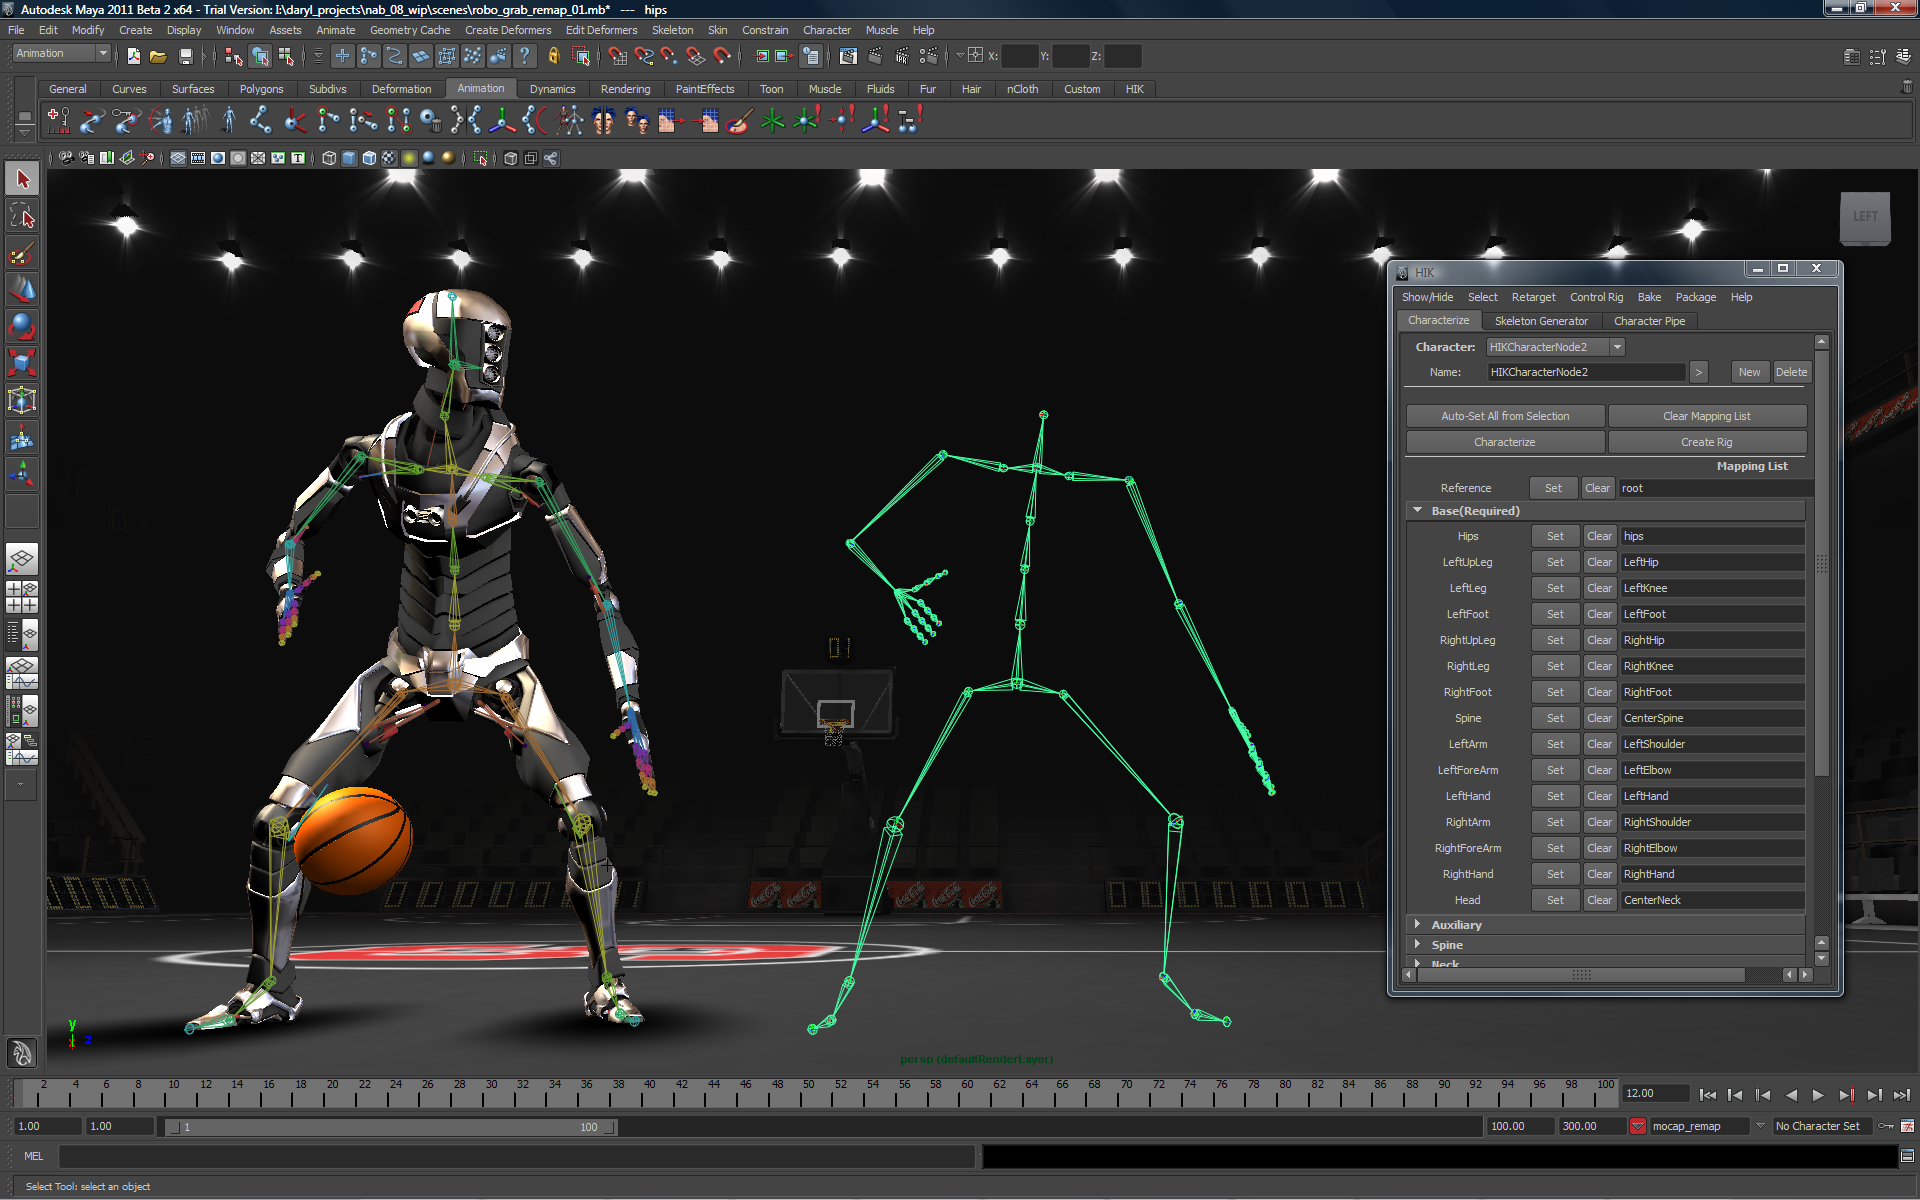 Autodesk Gives Away 25m In Free 3d Modeling Software To Students In Australia New Zealand